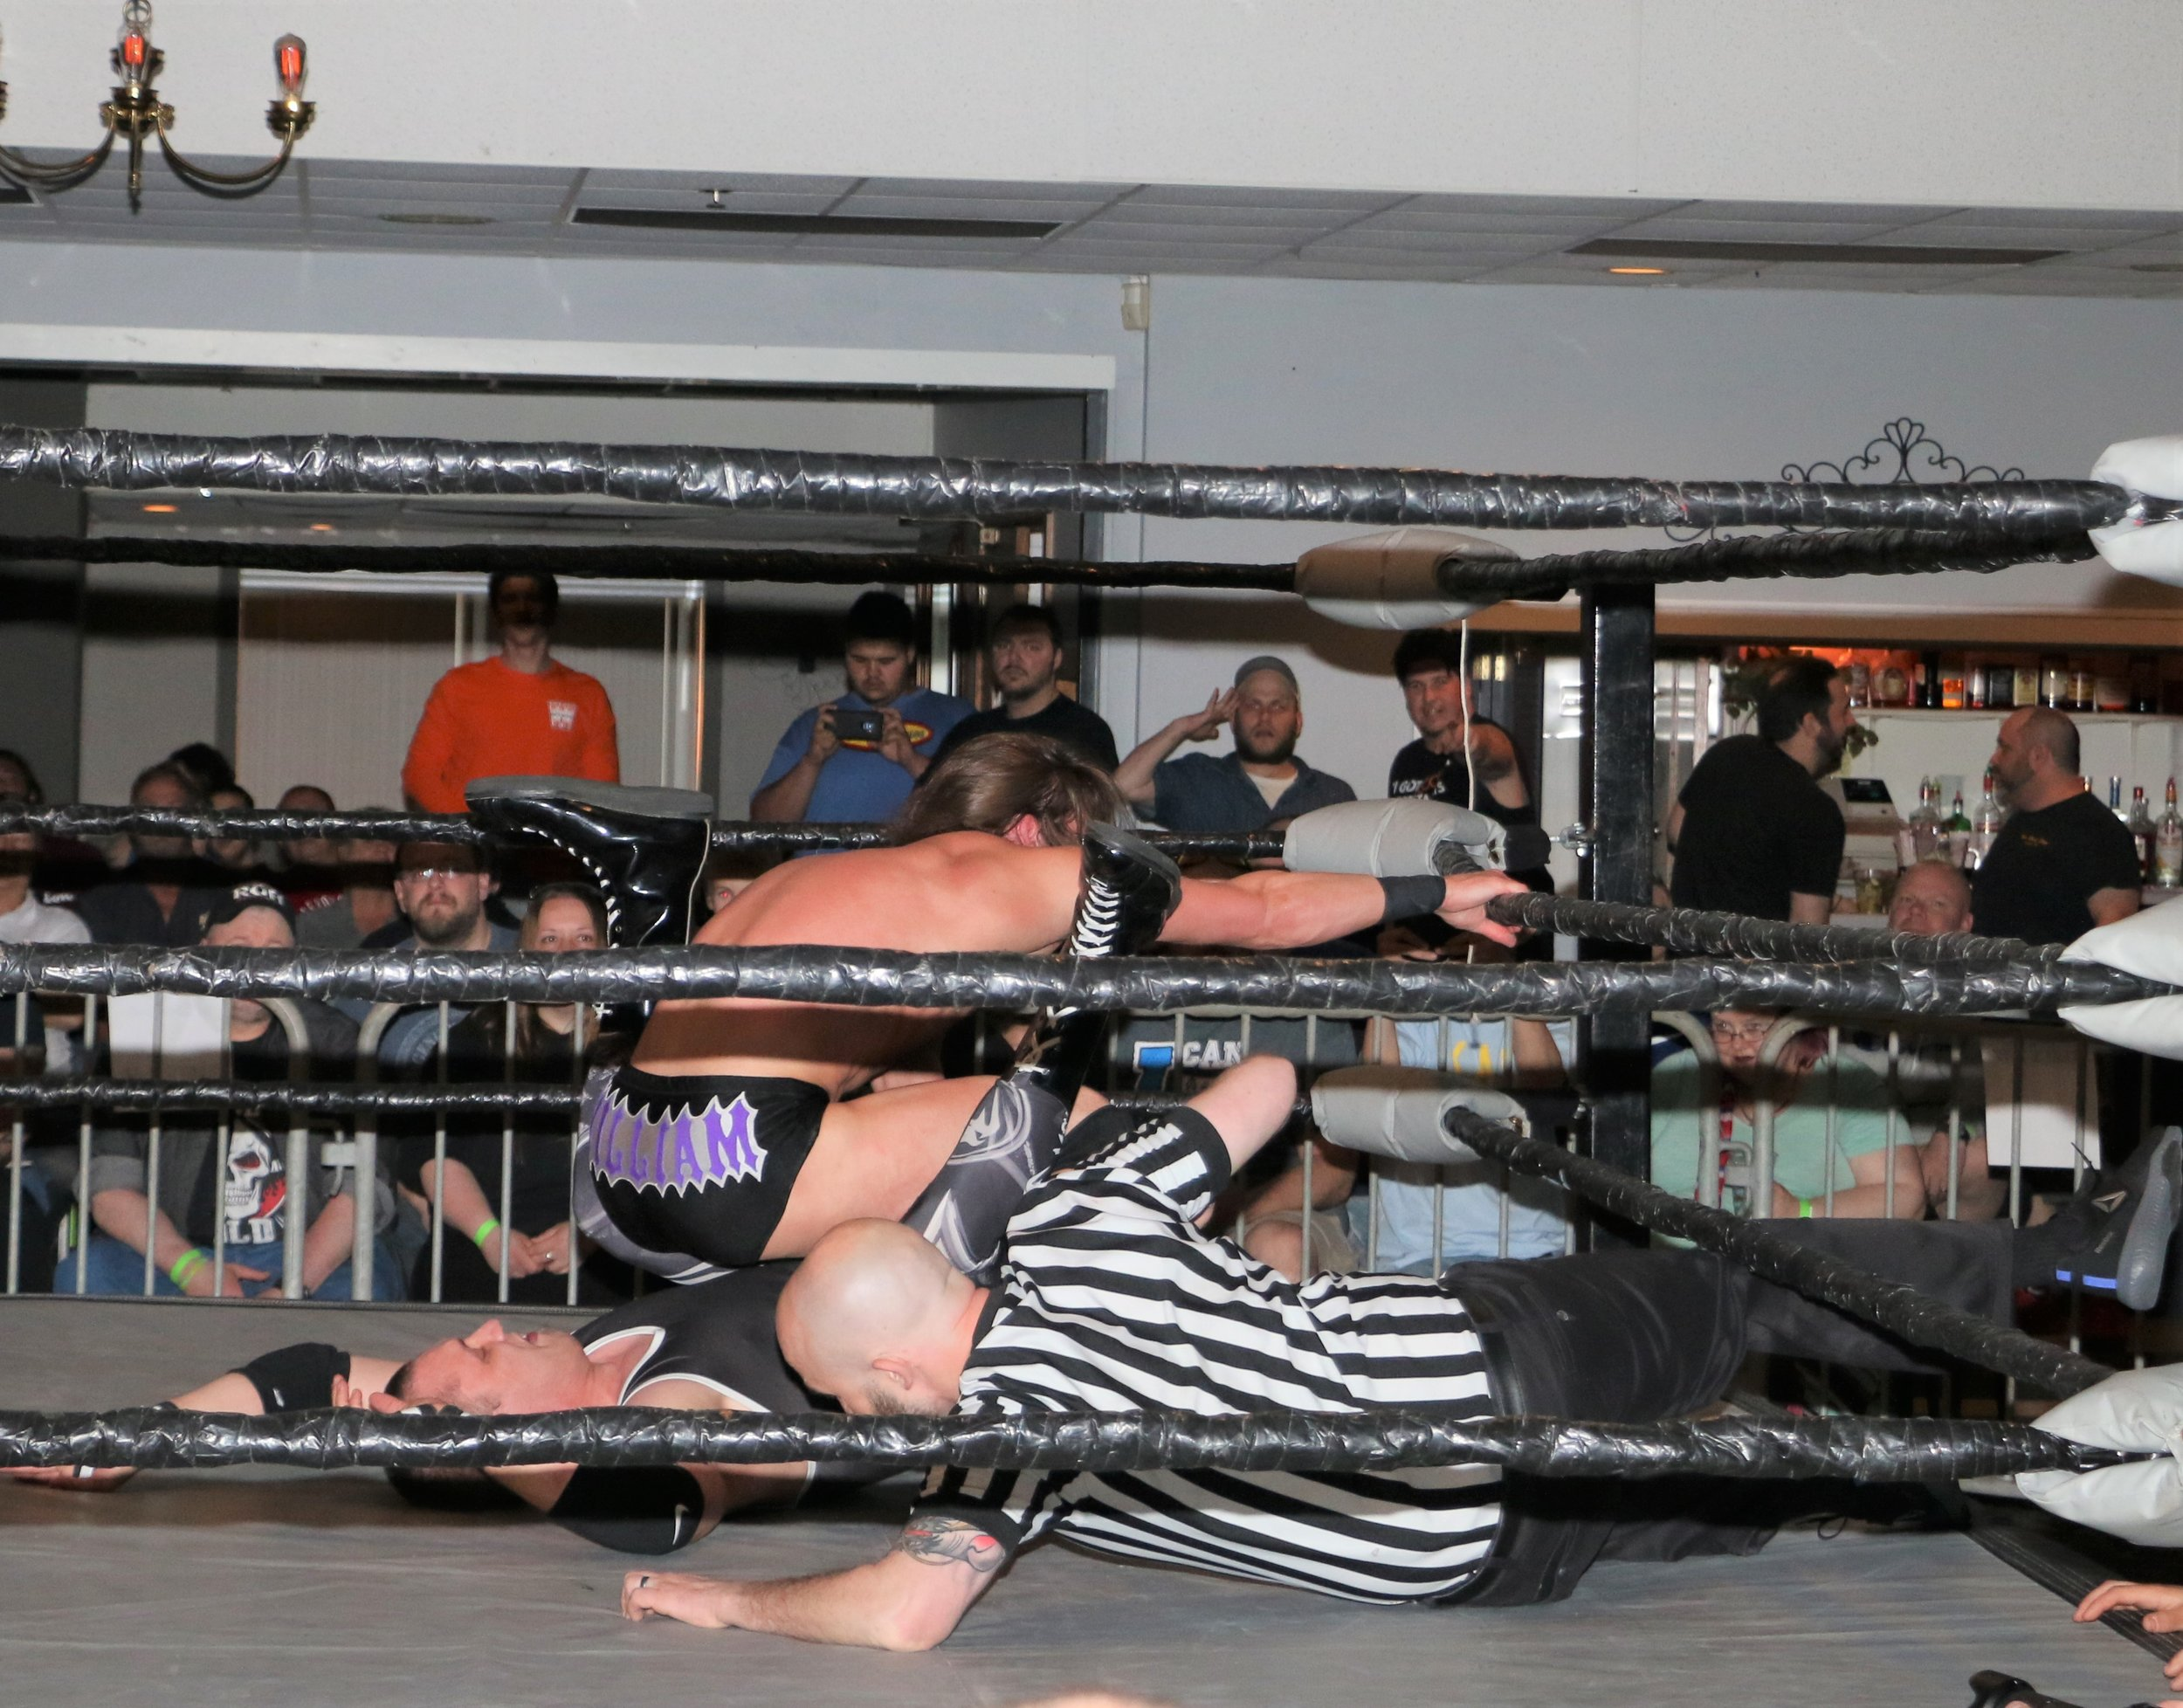 William Jacobs attempts to pin John Fate while holding the ropes for leverage.